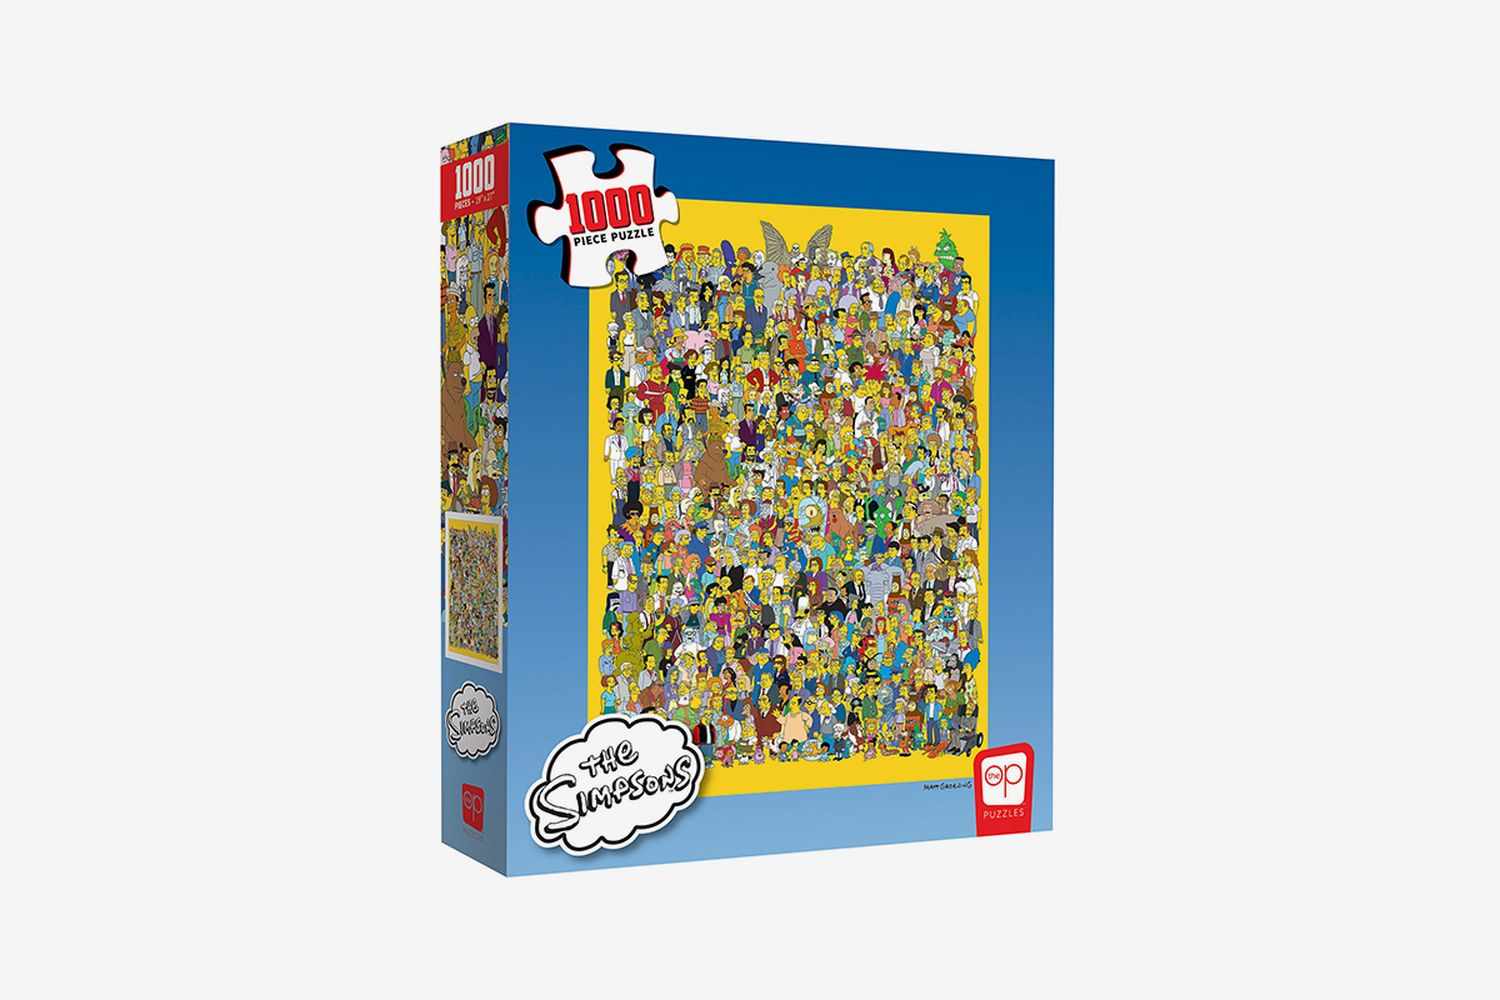 The Simpsons Cast 1000 Piece Puzzle